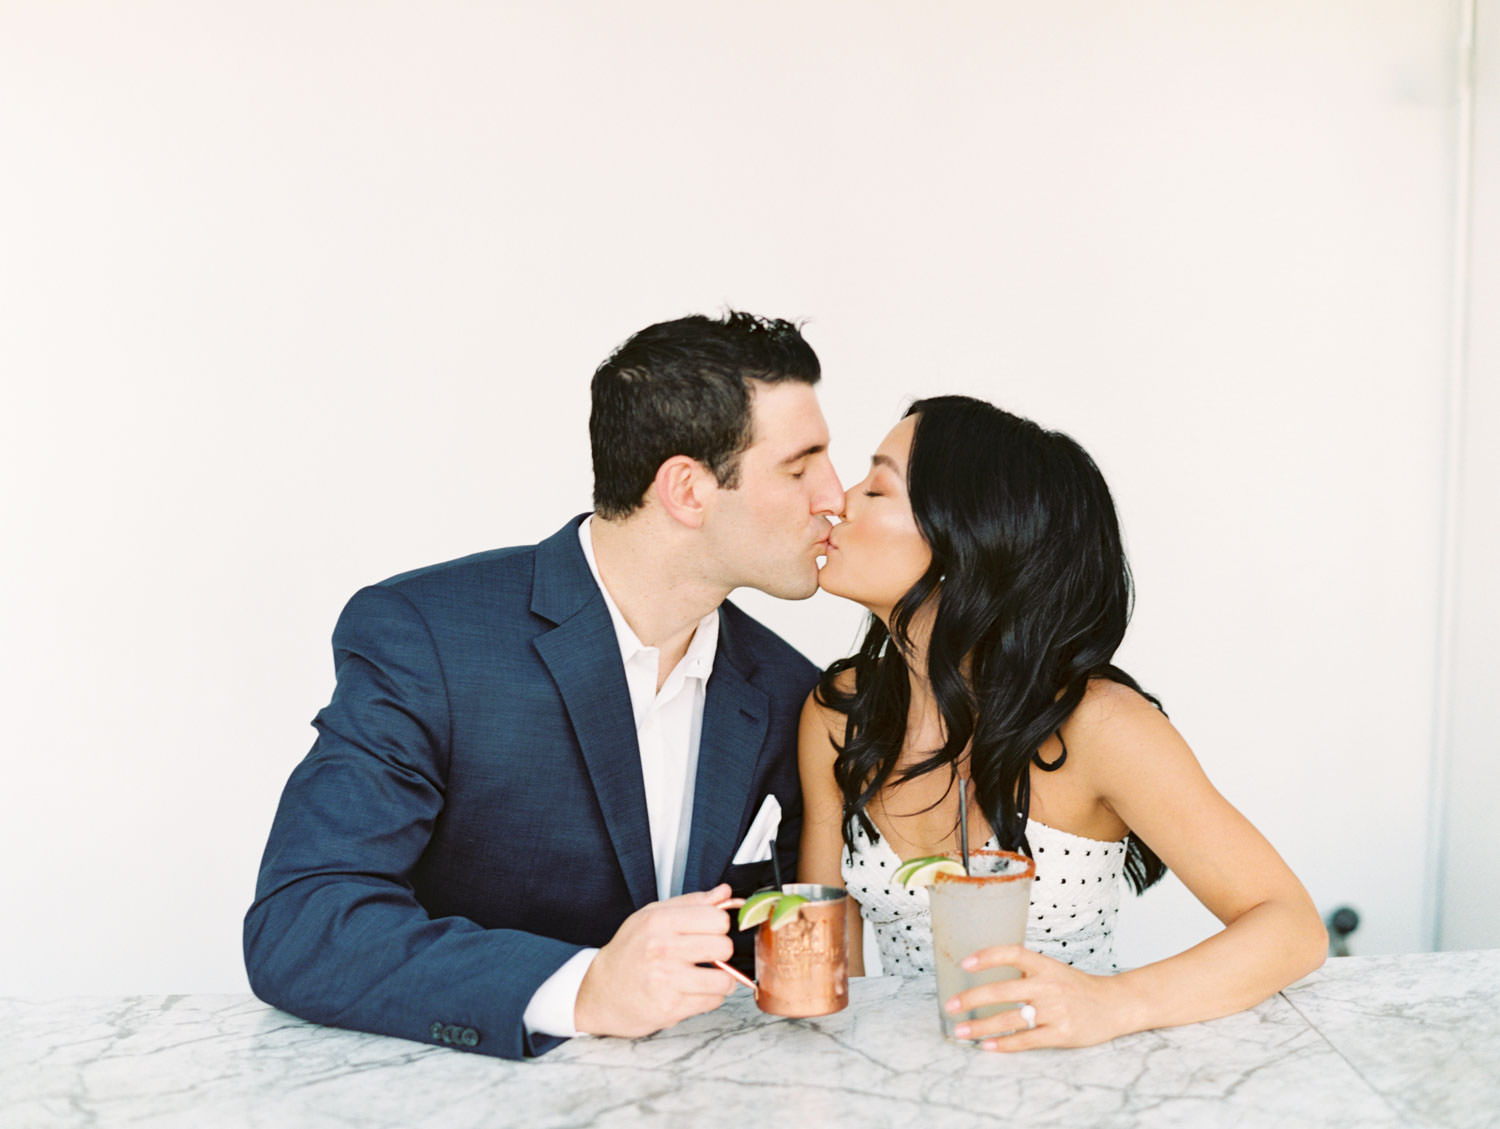 Groom and bride at a marble table drinking cocktails and kissing. Fairweather Rooftop Bar Engagement Photos on film by Cavin Elizabeth Photography